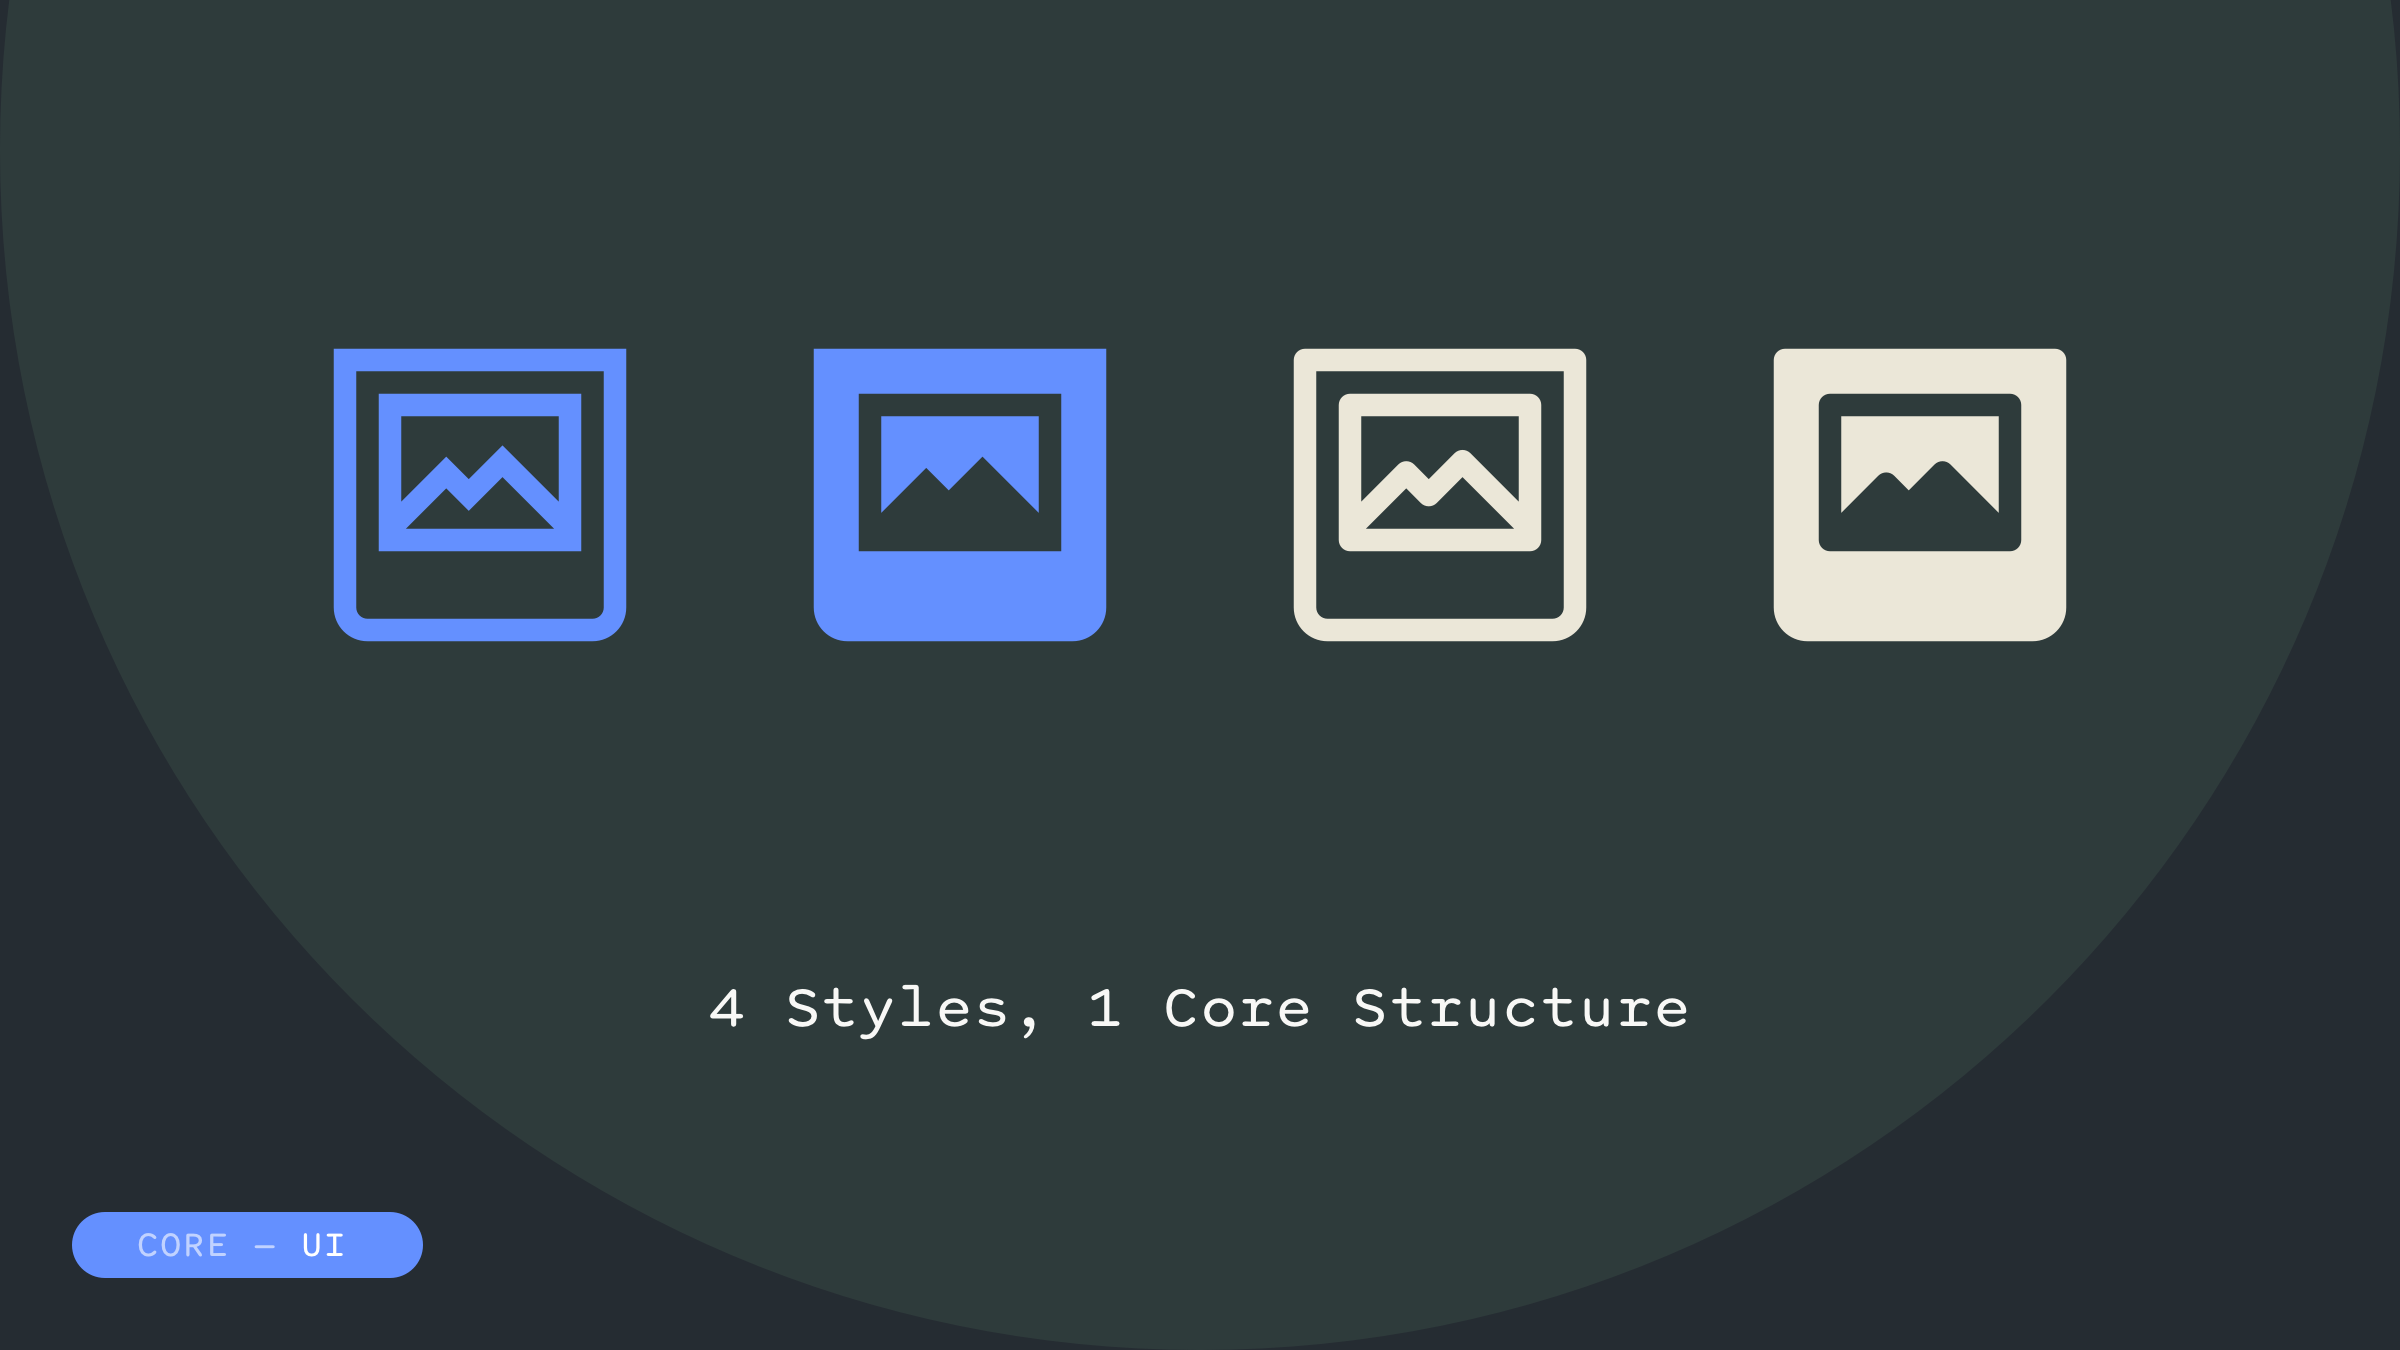 Kit of Parts - Icons - Core UI - 4 Styles